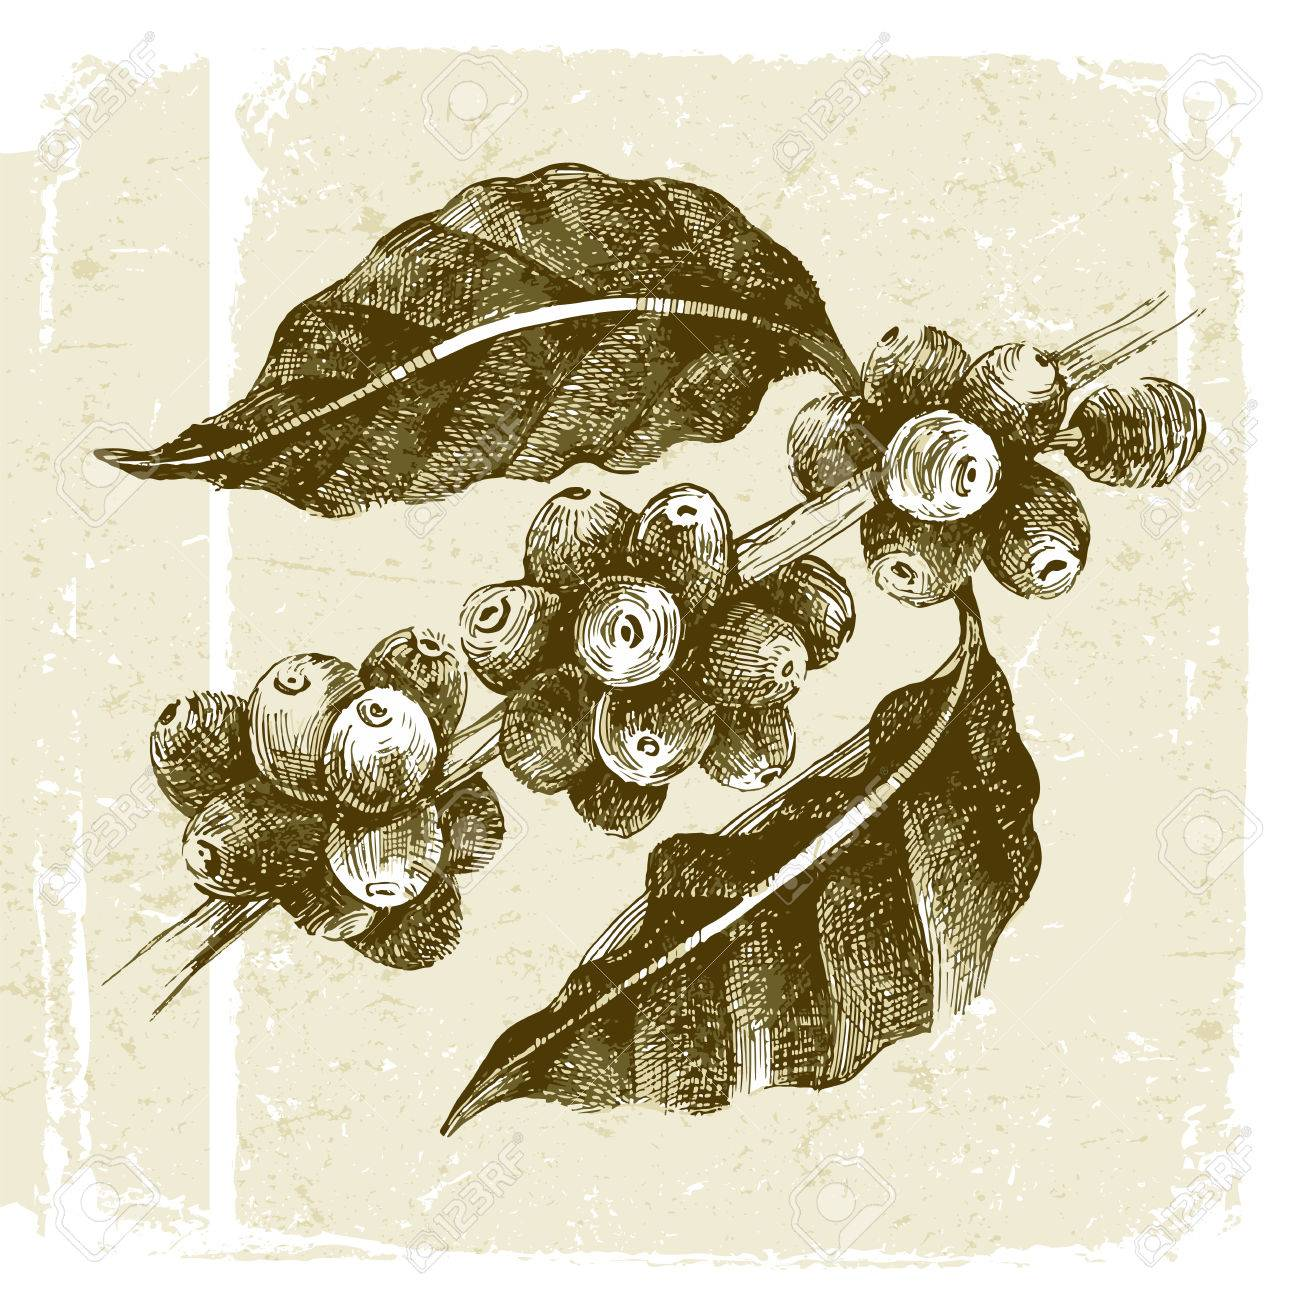 hand drawn coffee tree branch in vintage style - 48490973